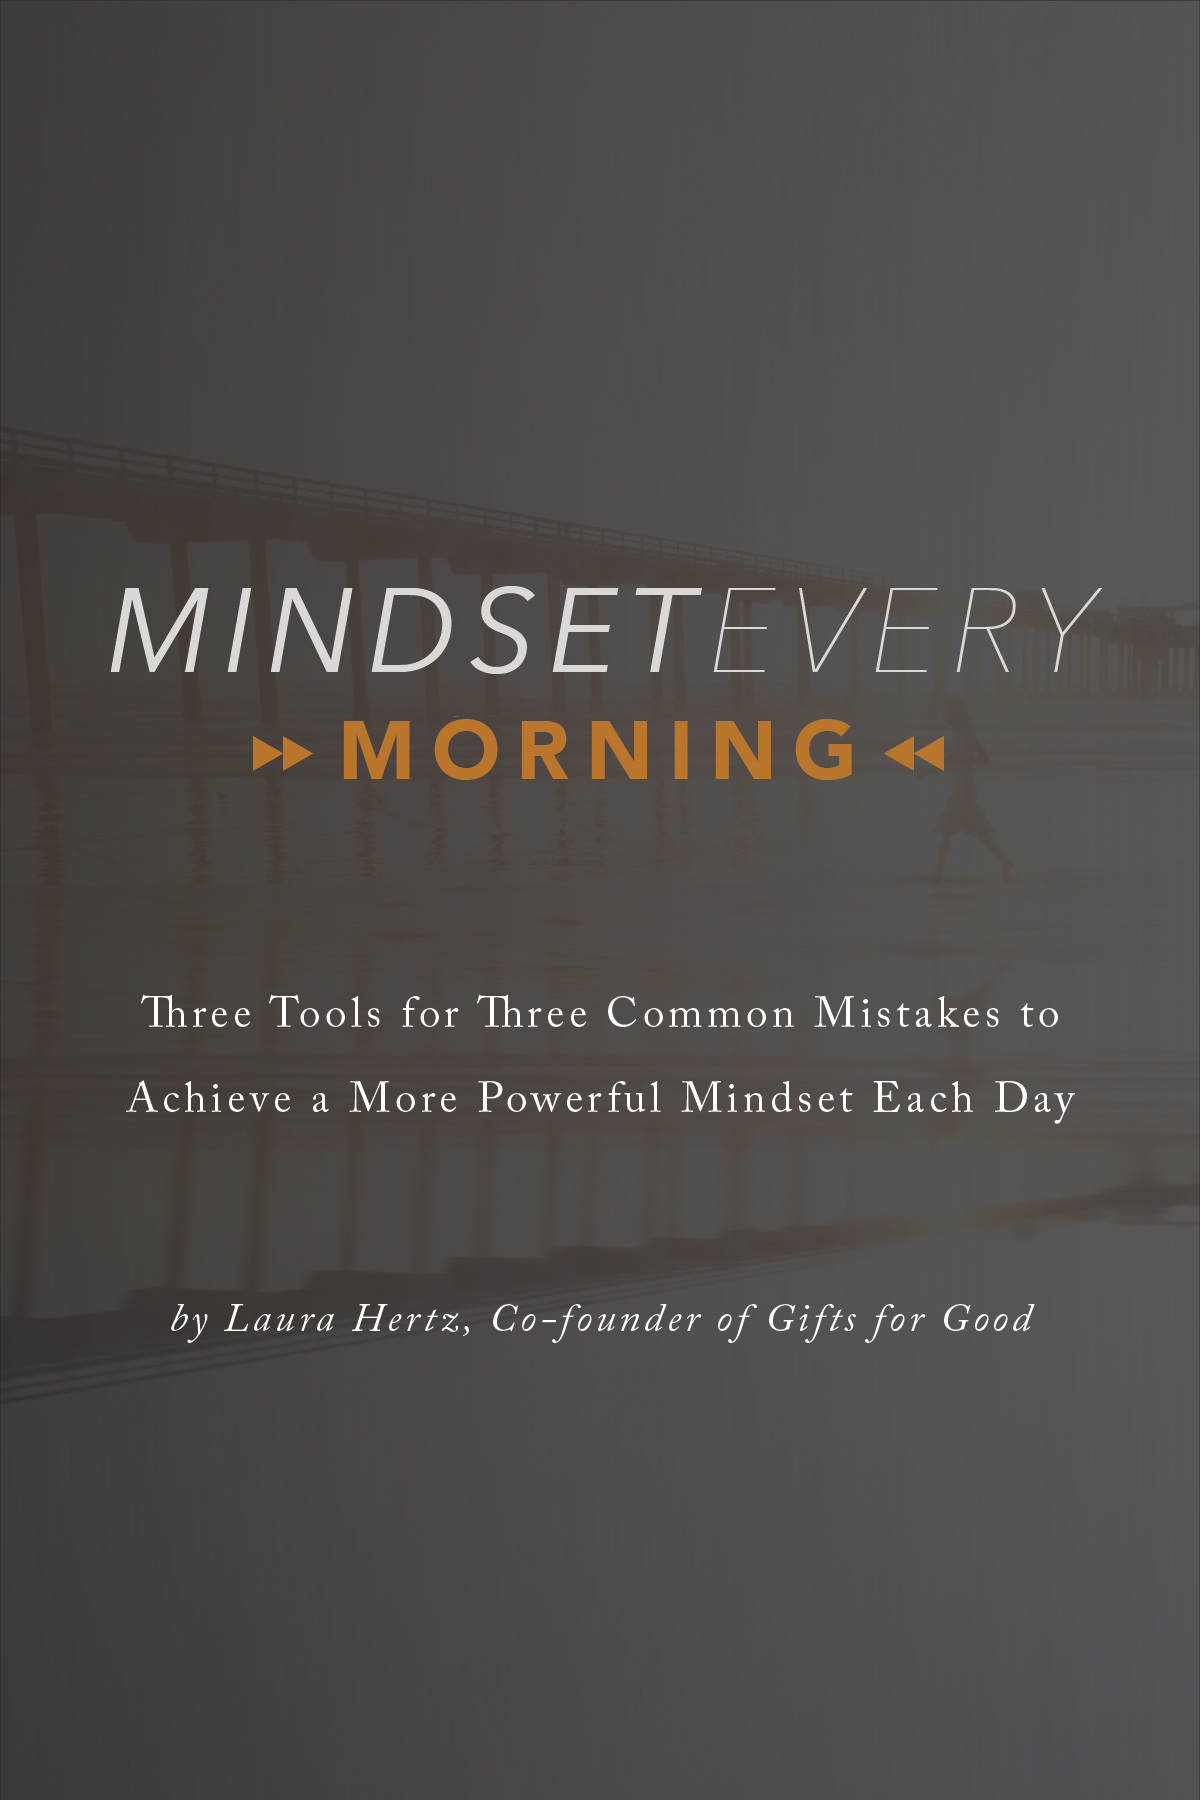 Mindset Every Morning Three Tools for Three Common Mistakes to Achieve a More Powerful Mindset Each Day by Laura Hertz of Gifts for Good